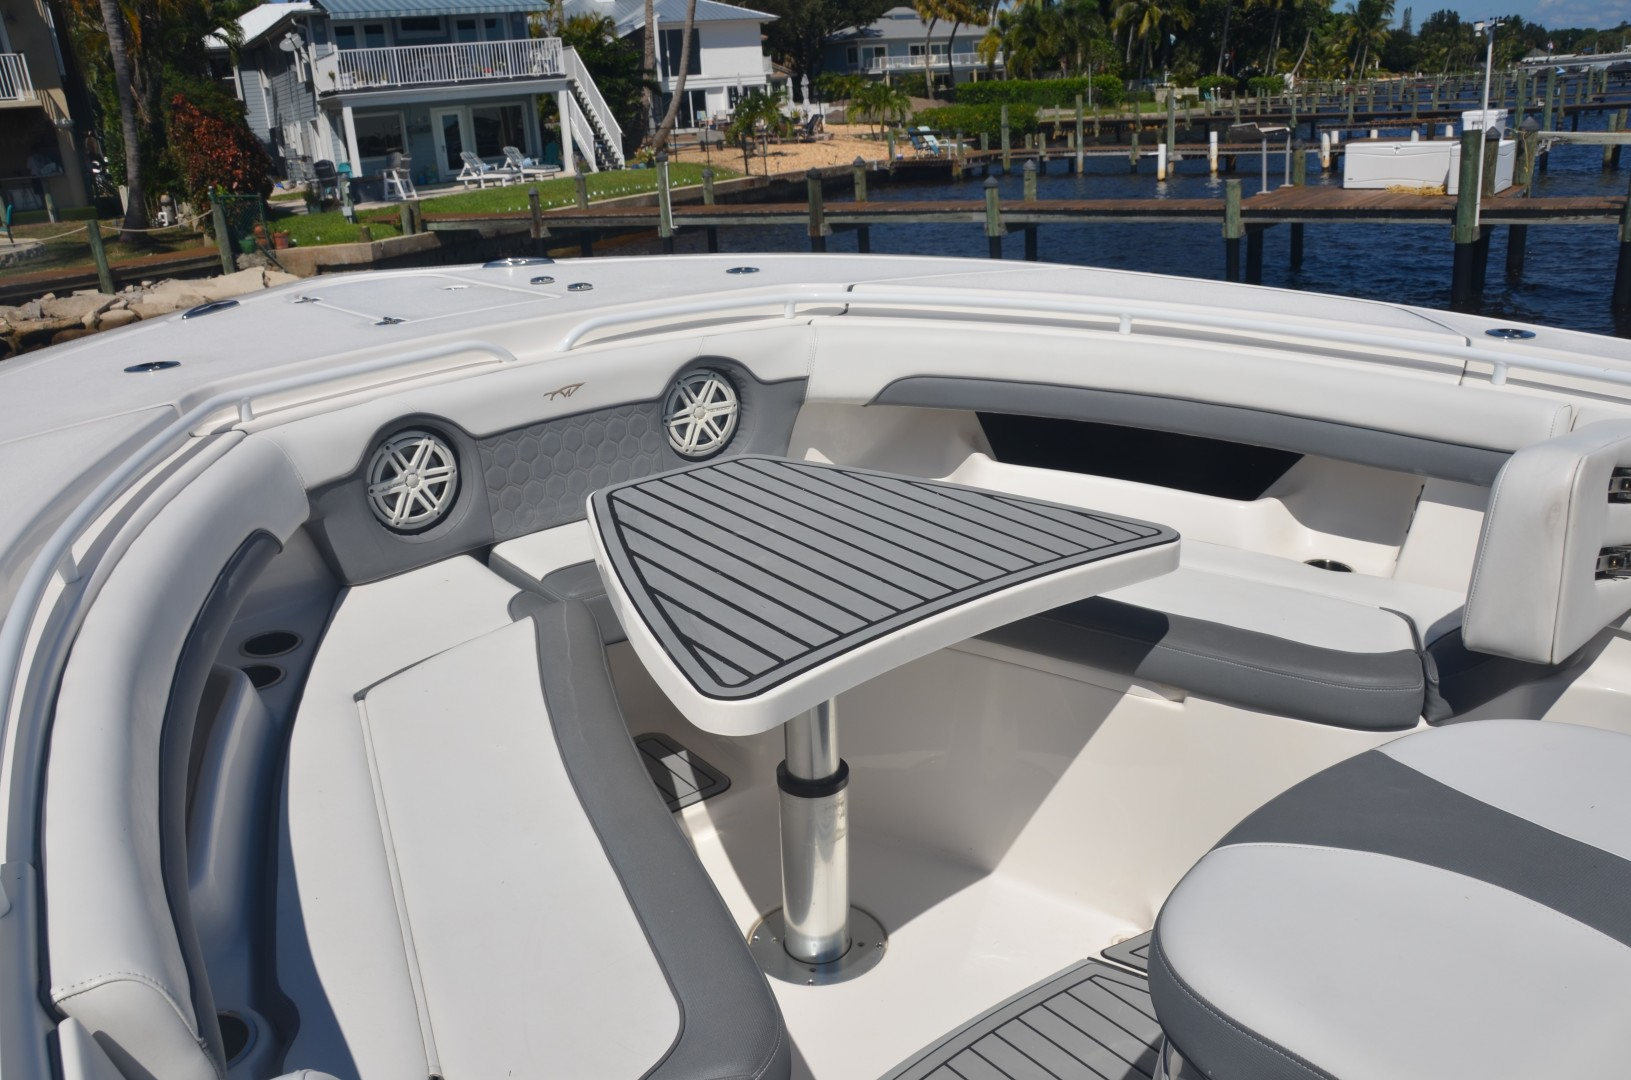 Tidewater 320 CC - pop-up table